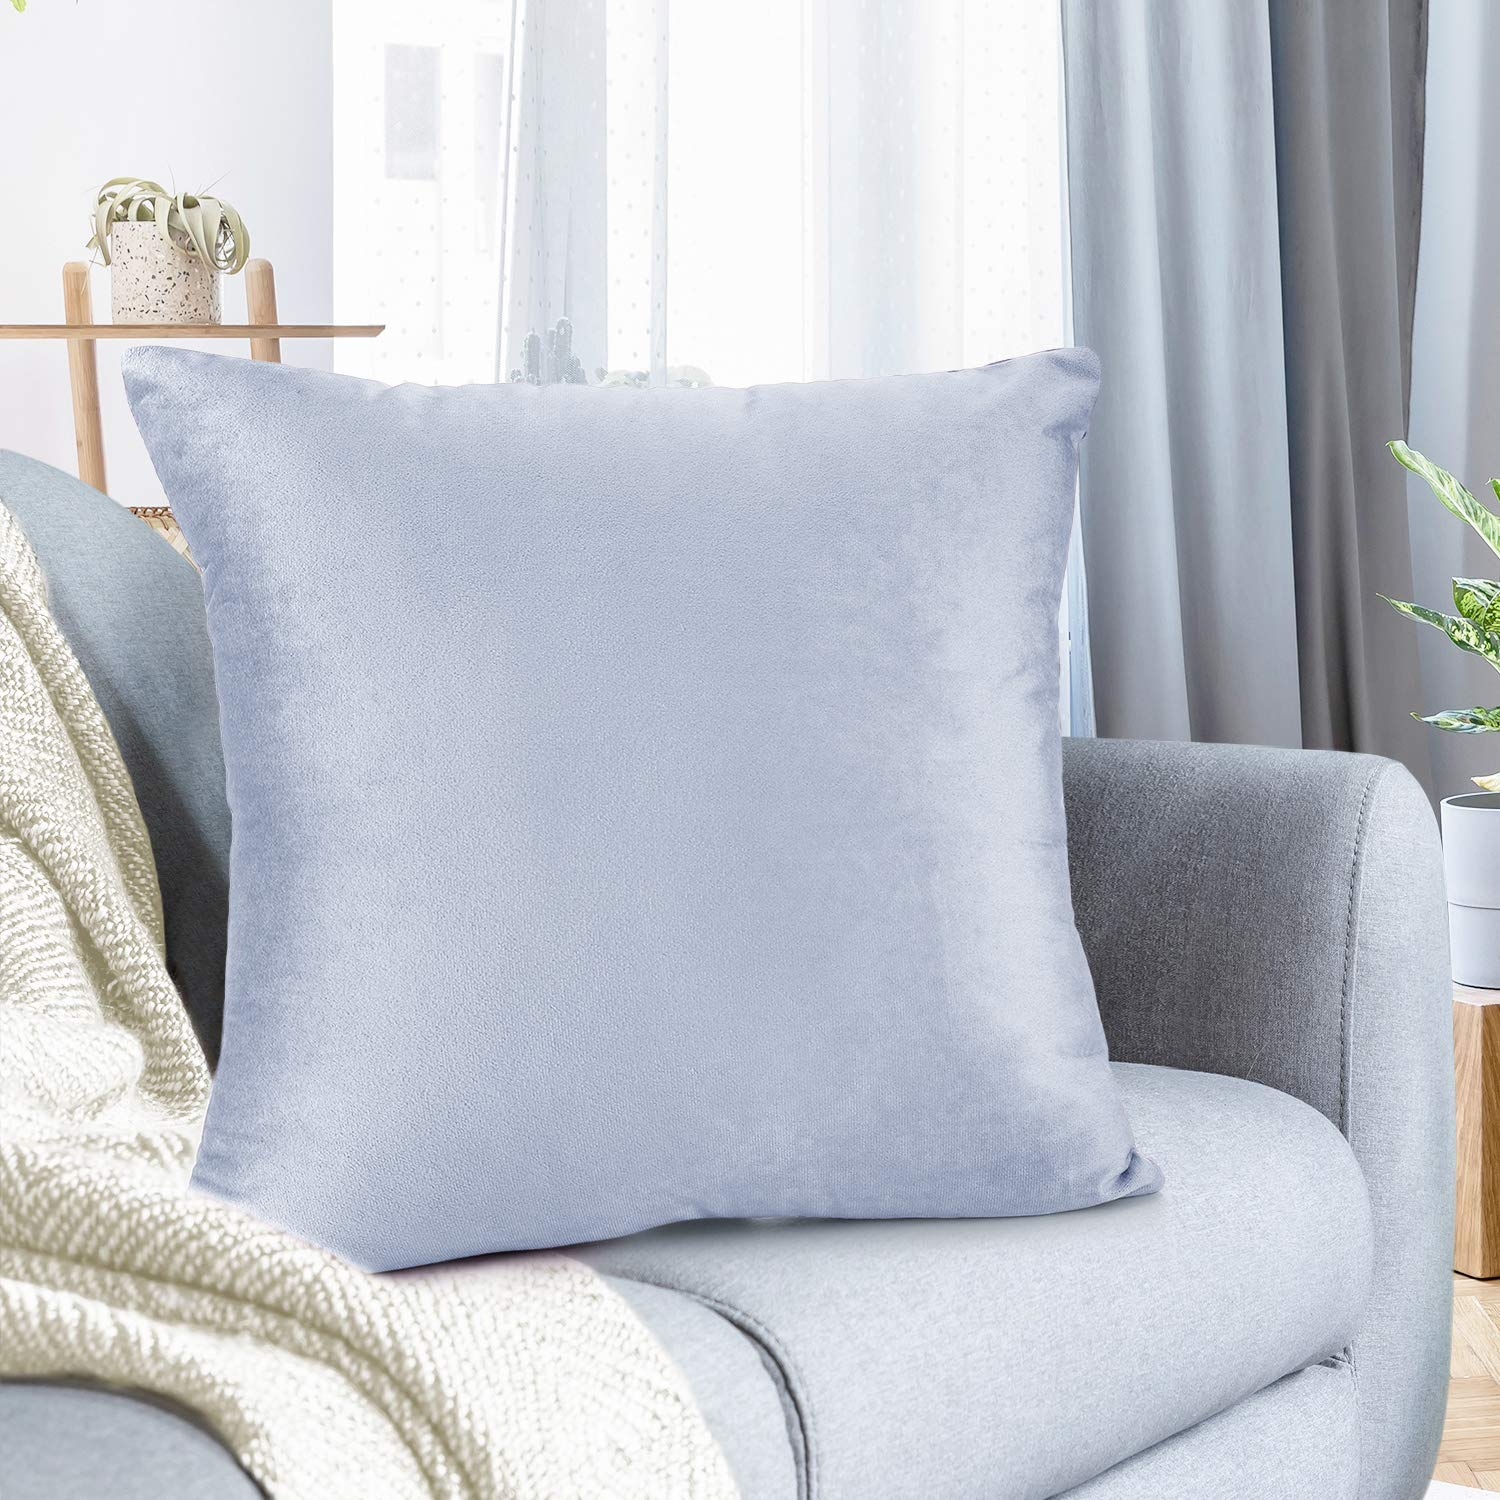 """Nestl Bedding Throw Pillow Cover 22"""" x 22"""" Soft Square Decorative Throw Pillow Covers Cozy Velvet Cushion Case for Sofa Couch Bedroom - Ice Blue"""